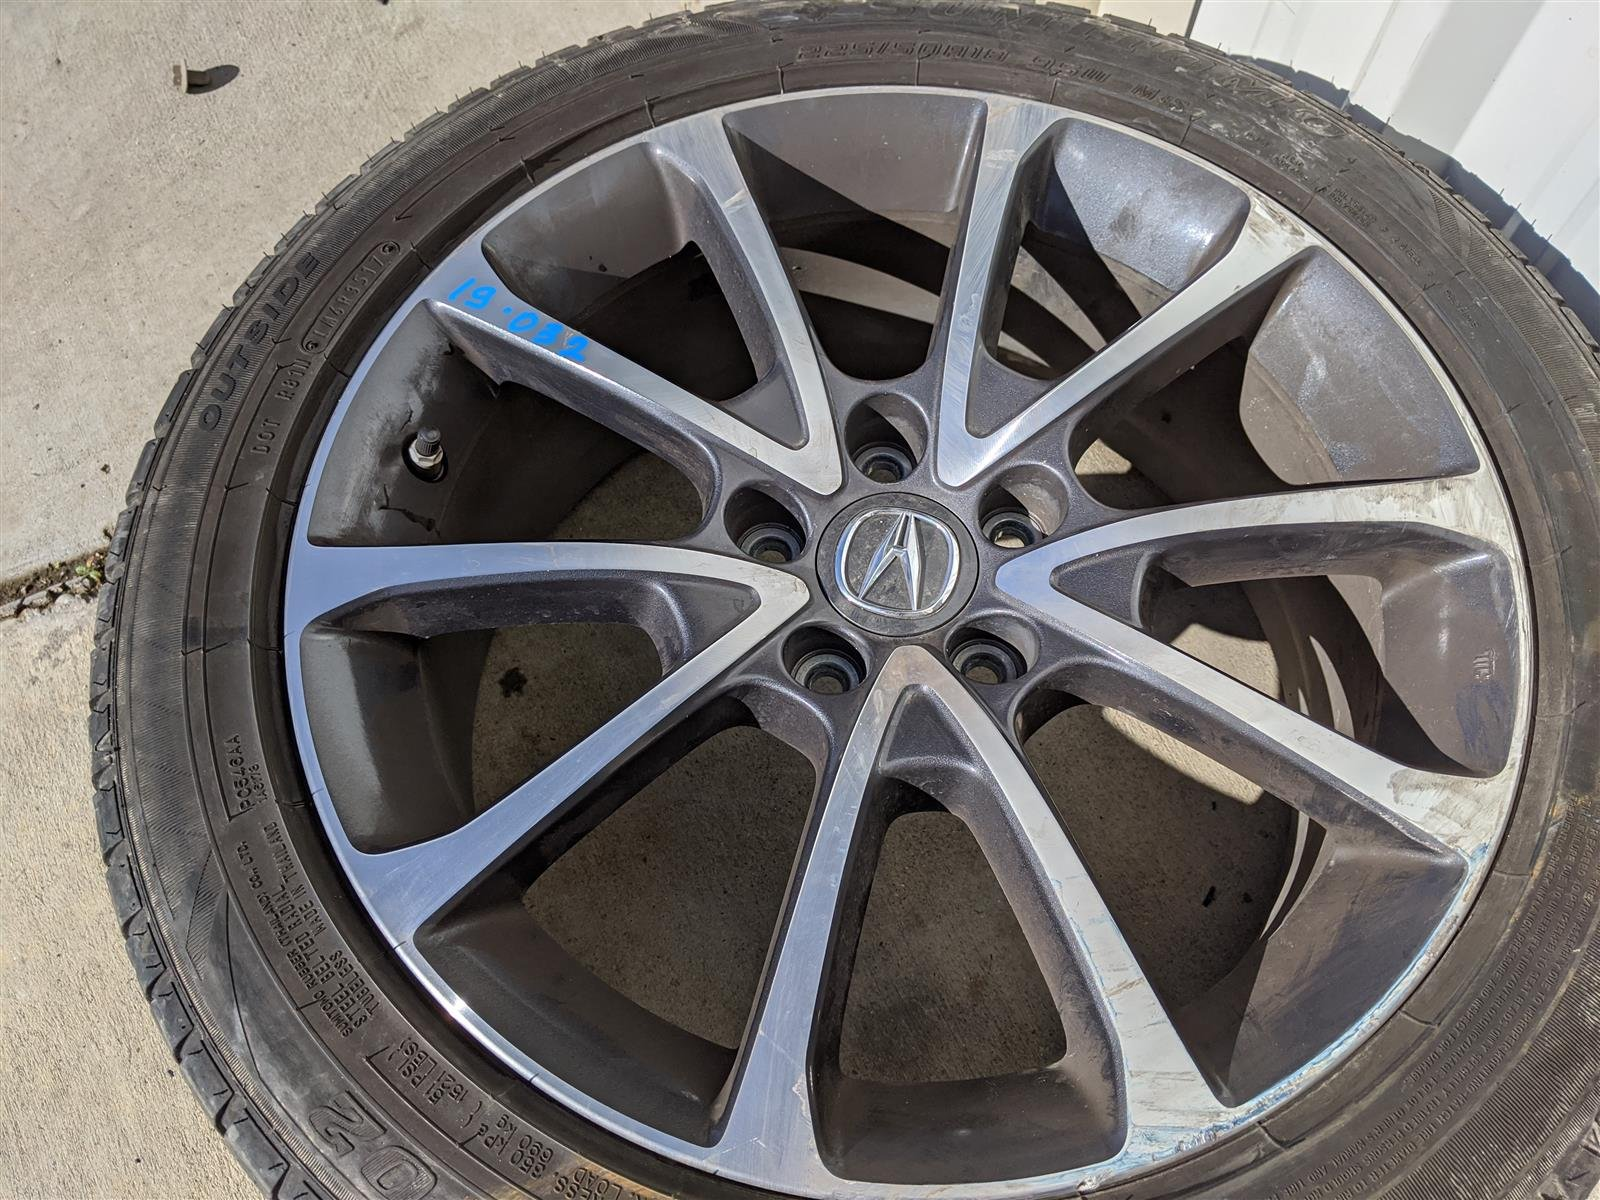 Sold 2015 Acura TLX 18x7.5 10 Spoke Alloy Wheel Replacement